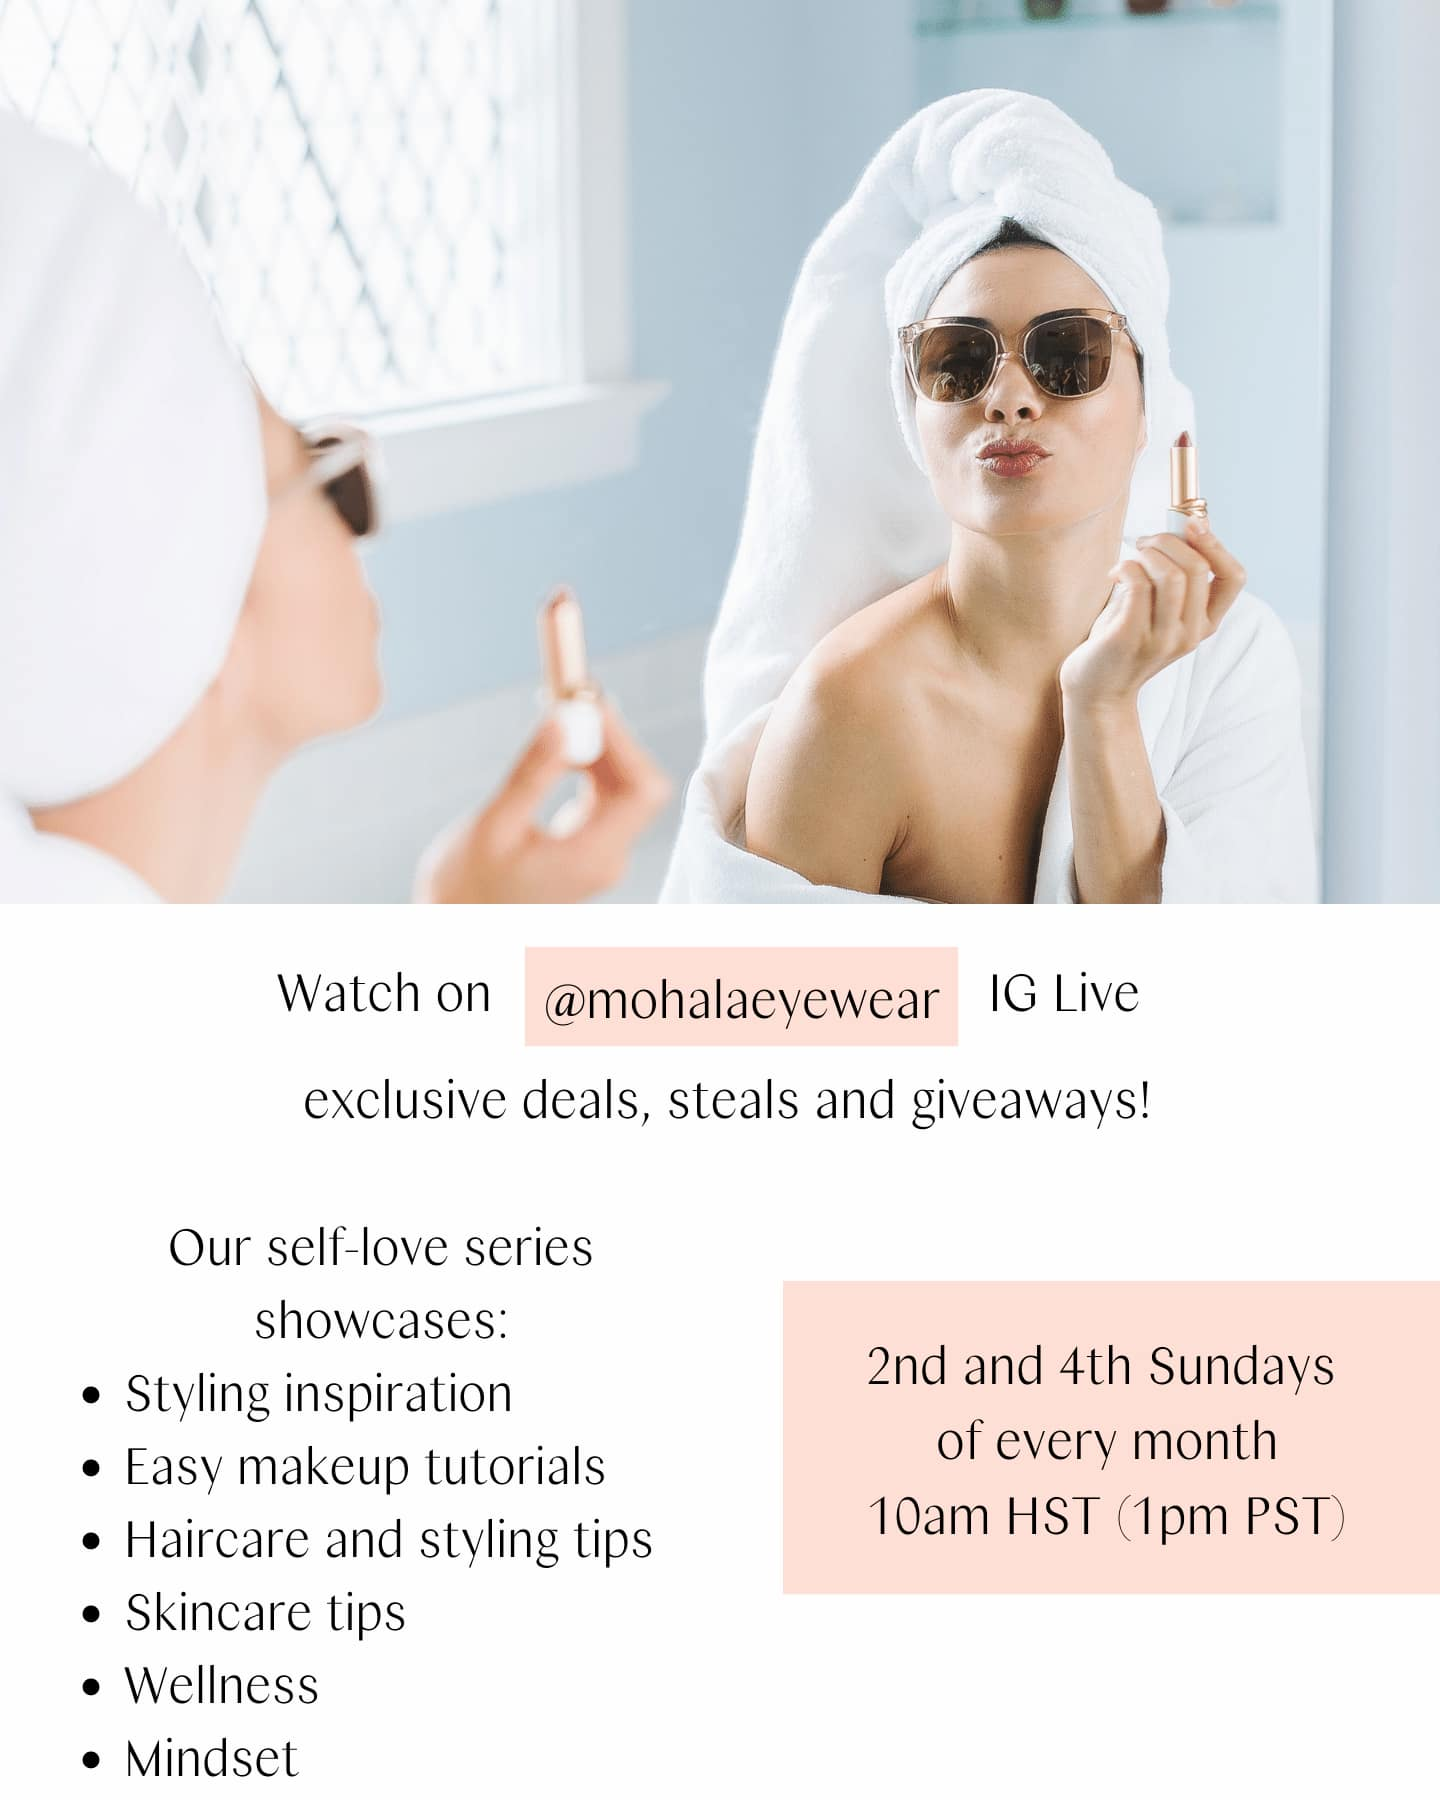 Self-love events and IG Live Shopping